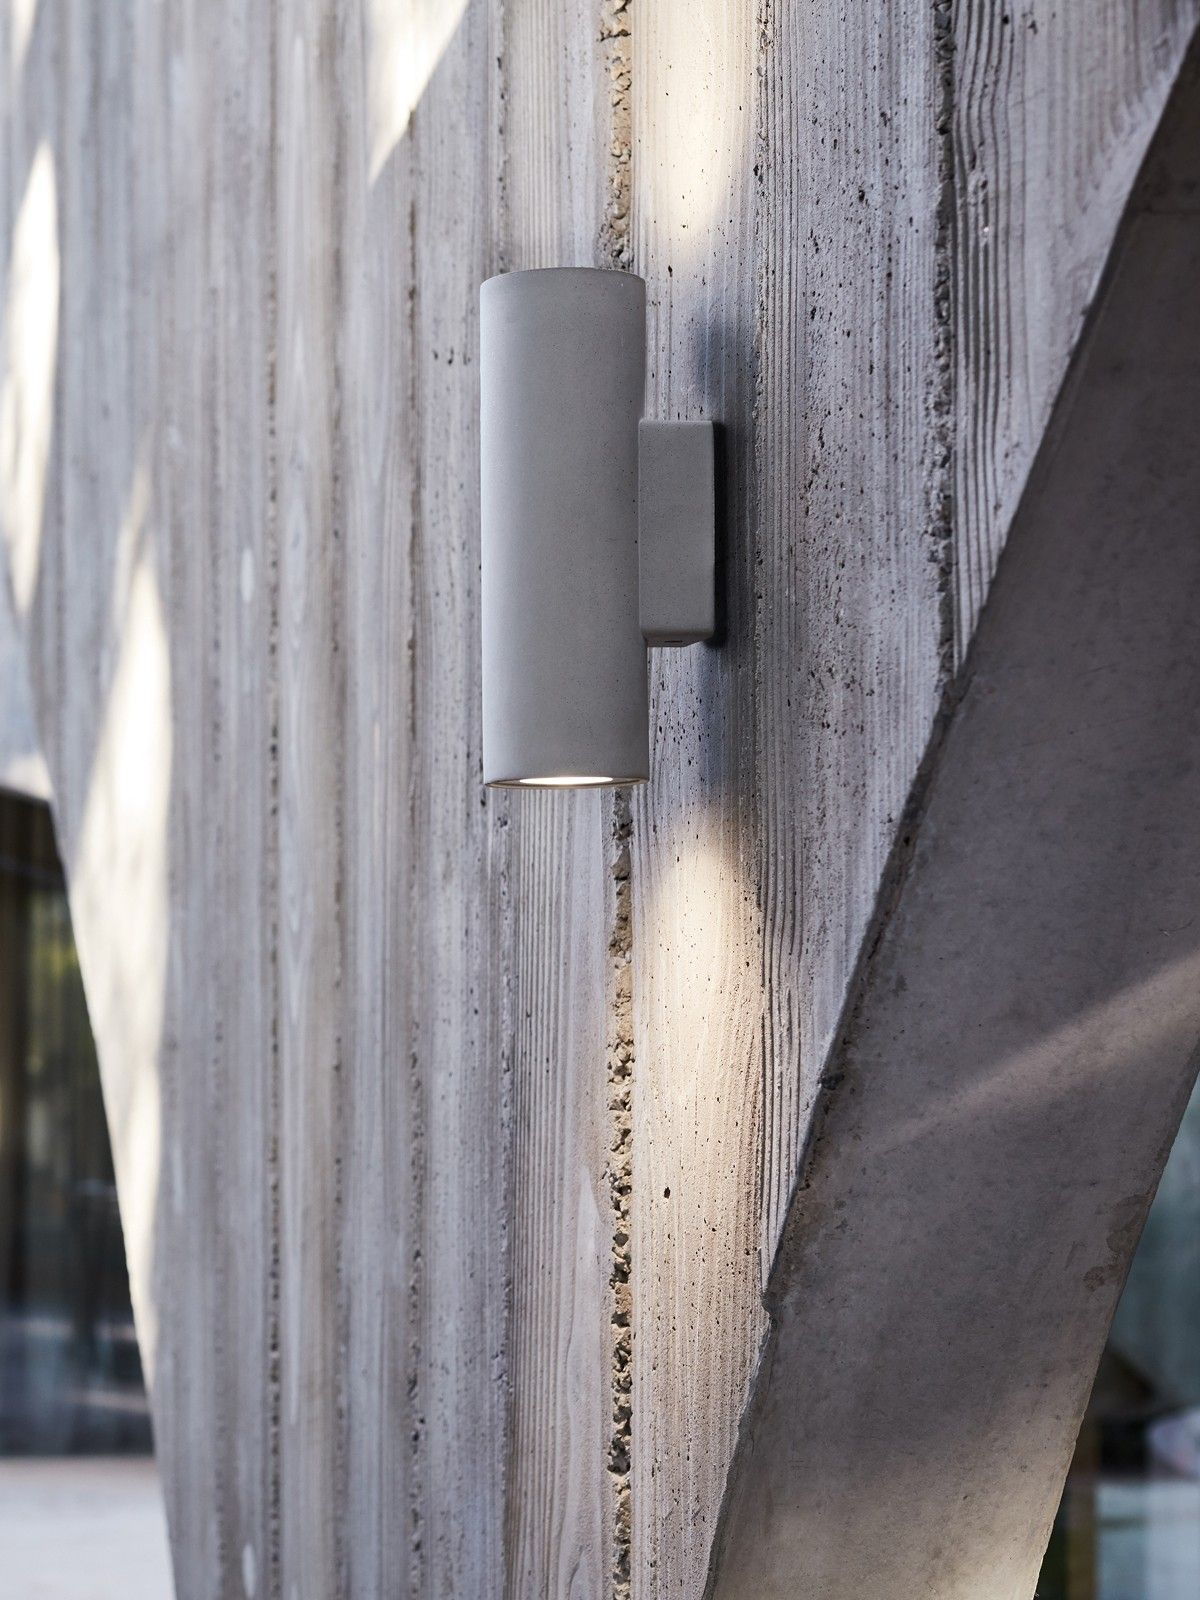 Mfl By Masson Tanimi Gu10 Up Down Wall Sconce In Concrete Modern Outdoor Lighting Sconces Wall Sconces